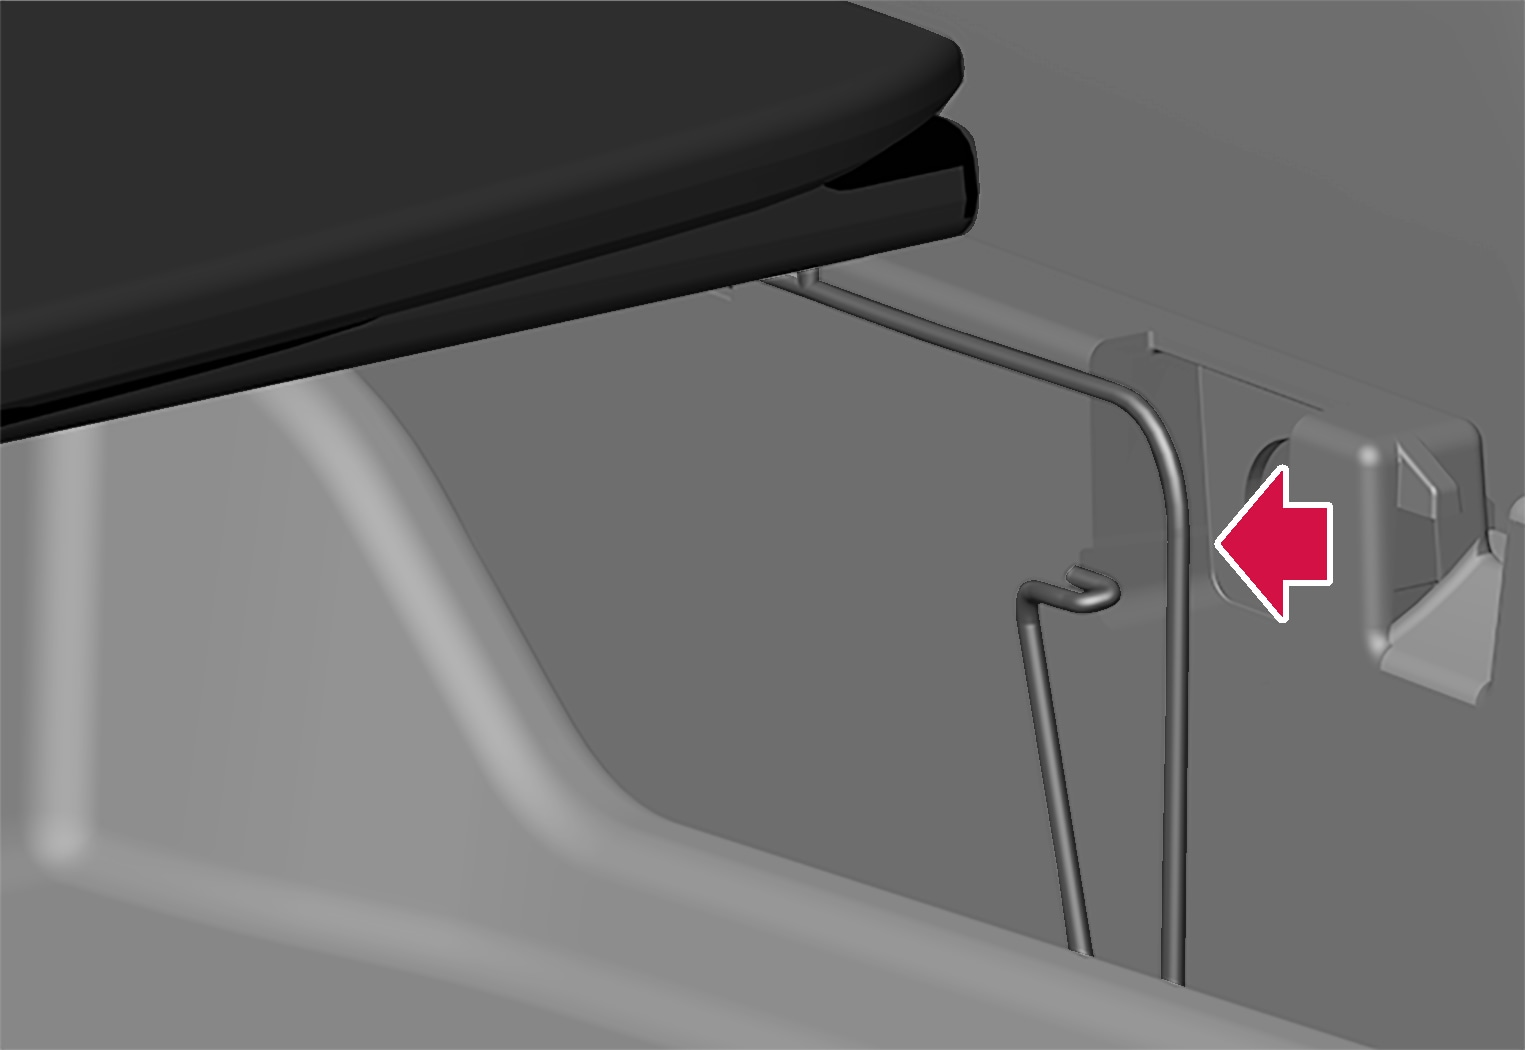 P6-1817-XC40-Foldable loadfloor removal step 2